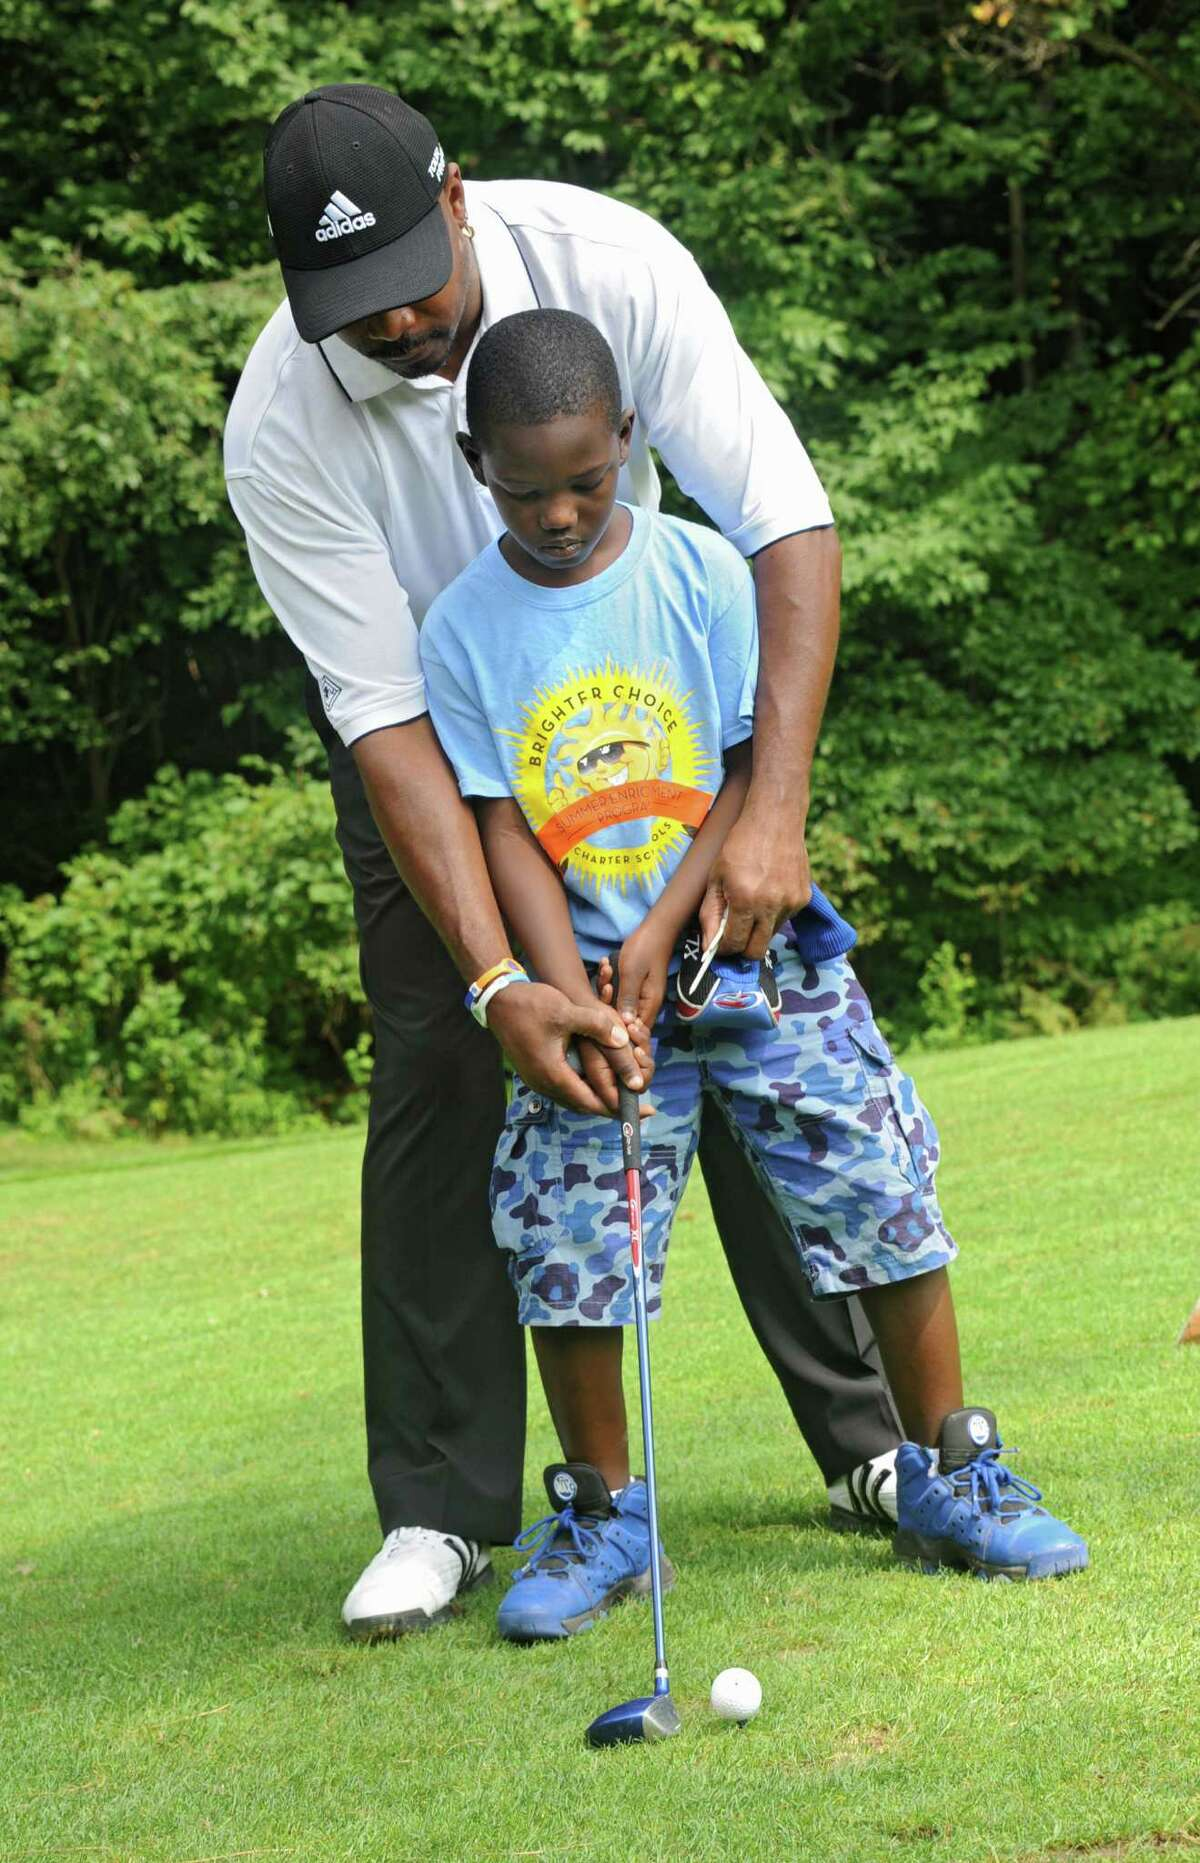 Volunteer Terry Cumberbatch teaches James Stokes, 9, how to hold a golf club as children from the city of Albany get some golf lessons during a program at Colonial Acres Golf Course on Friday, Aug. 1, 2014 in Glenmont, N.Y. (Lori Van Buren / Times Union)